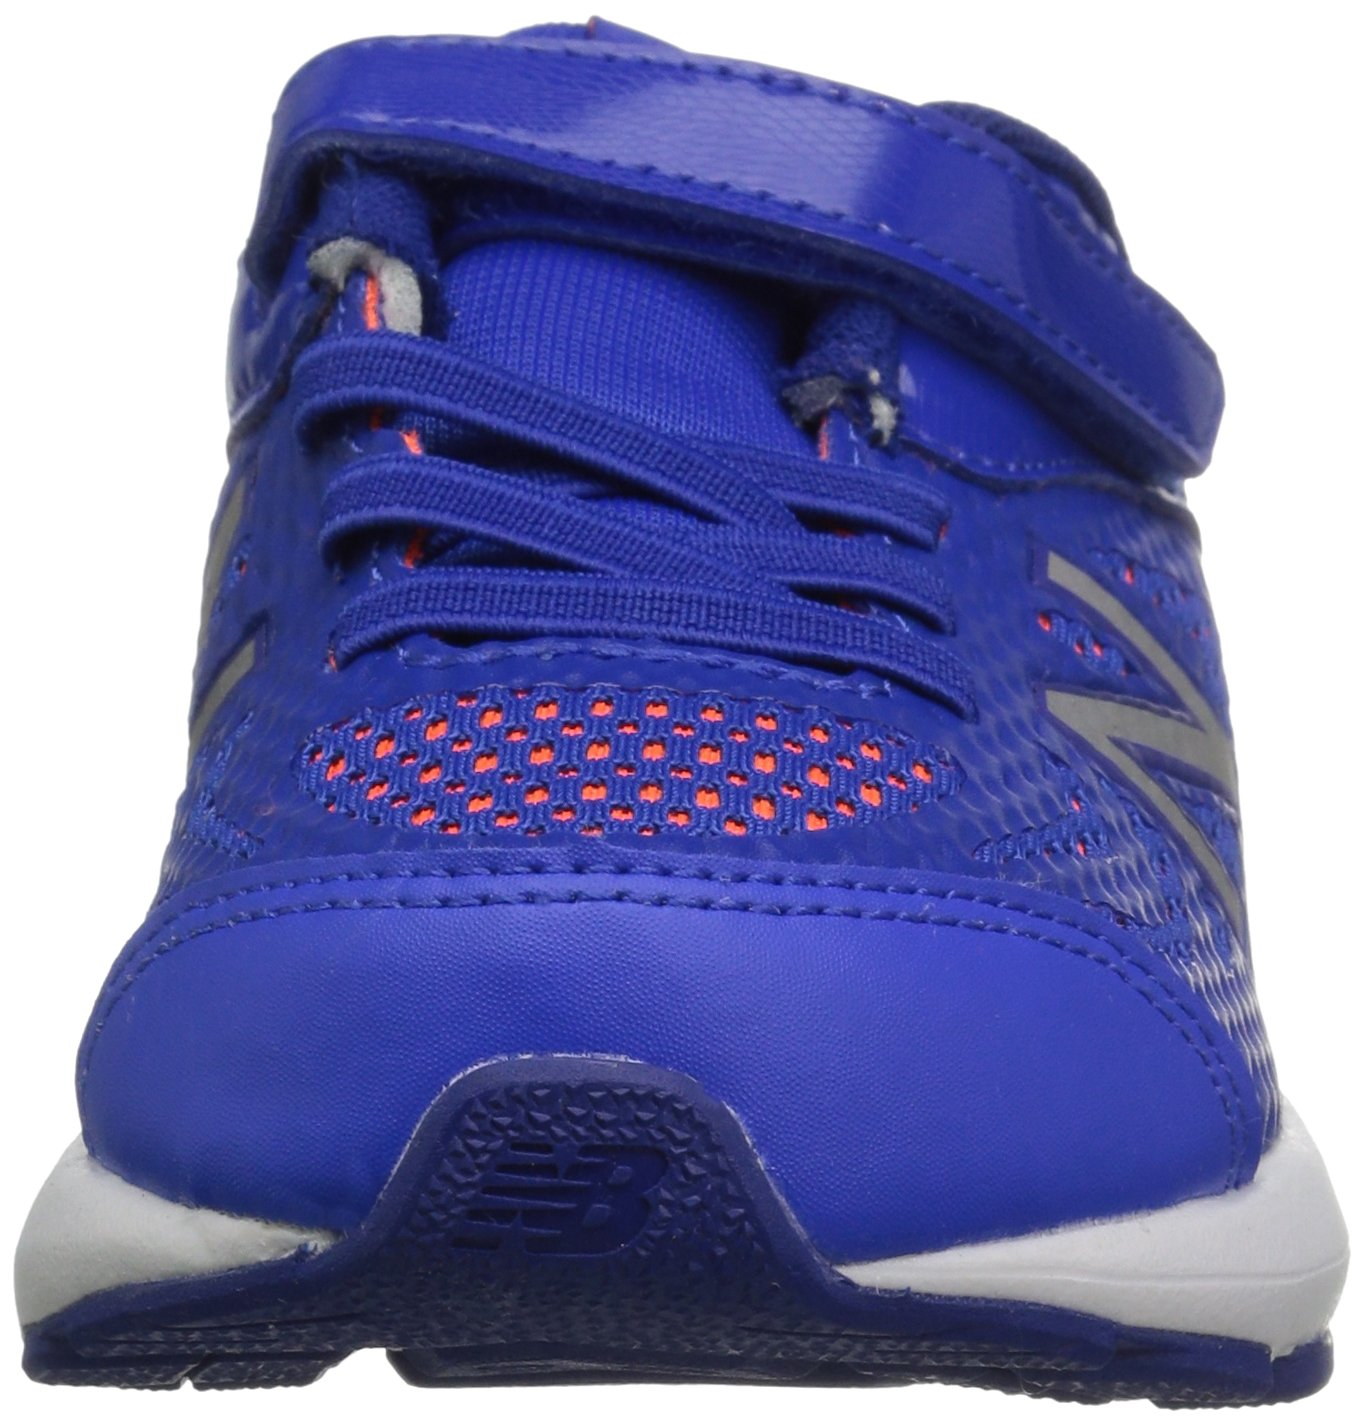 New Balance Boys' 519v1 Hook and Loop Running Shoe Pacific/Dynomite 2 M US Infant by New Balance (Image #4)